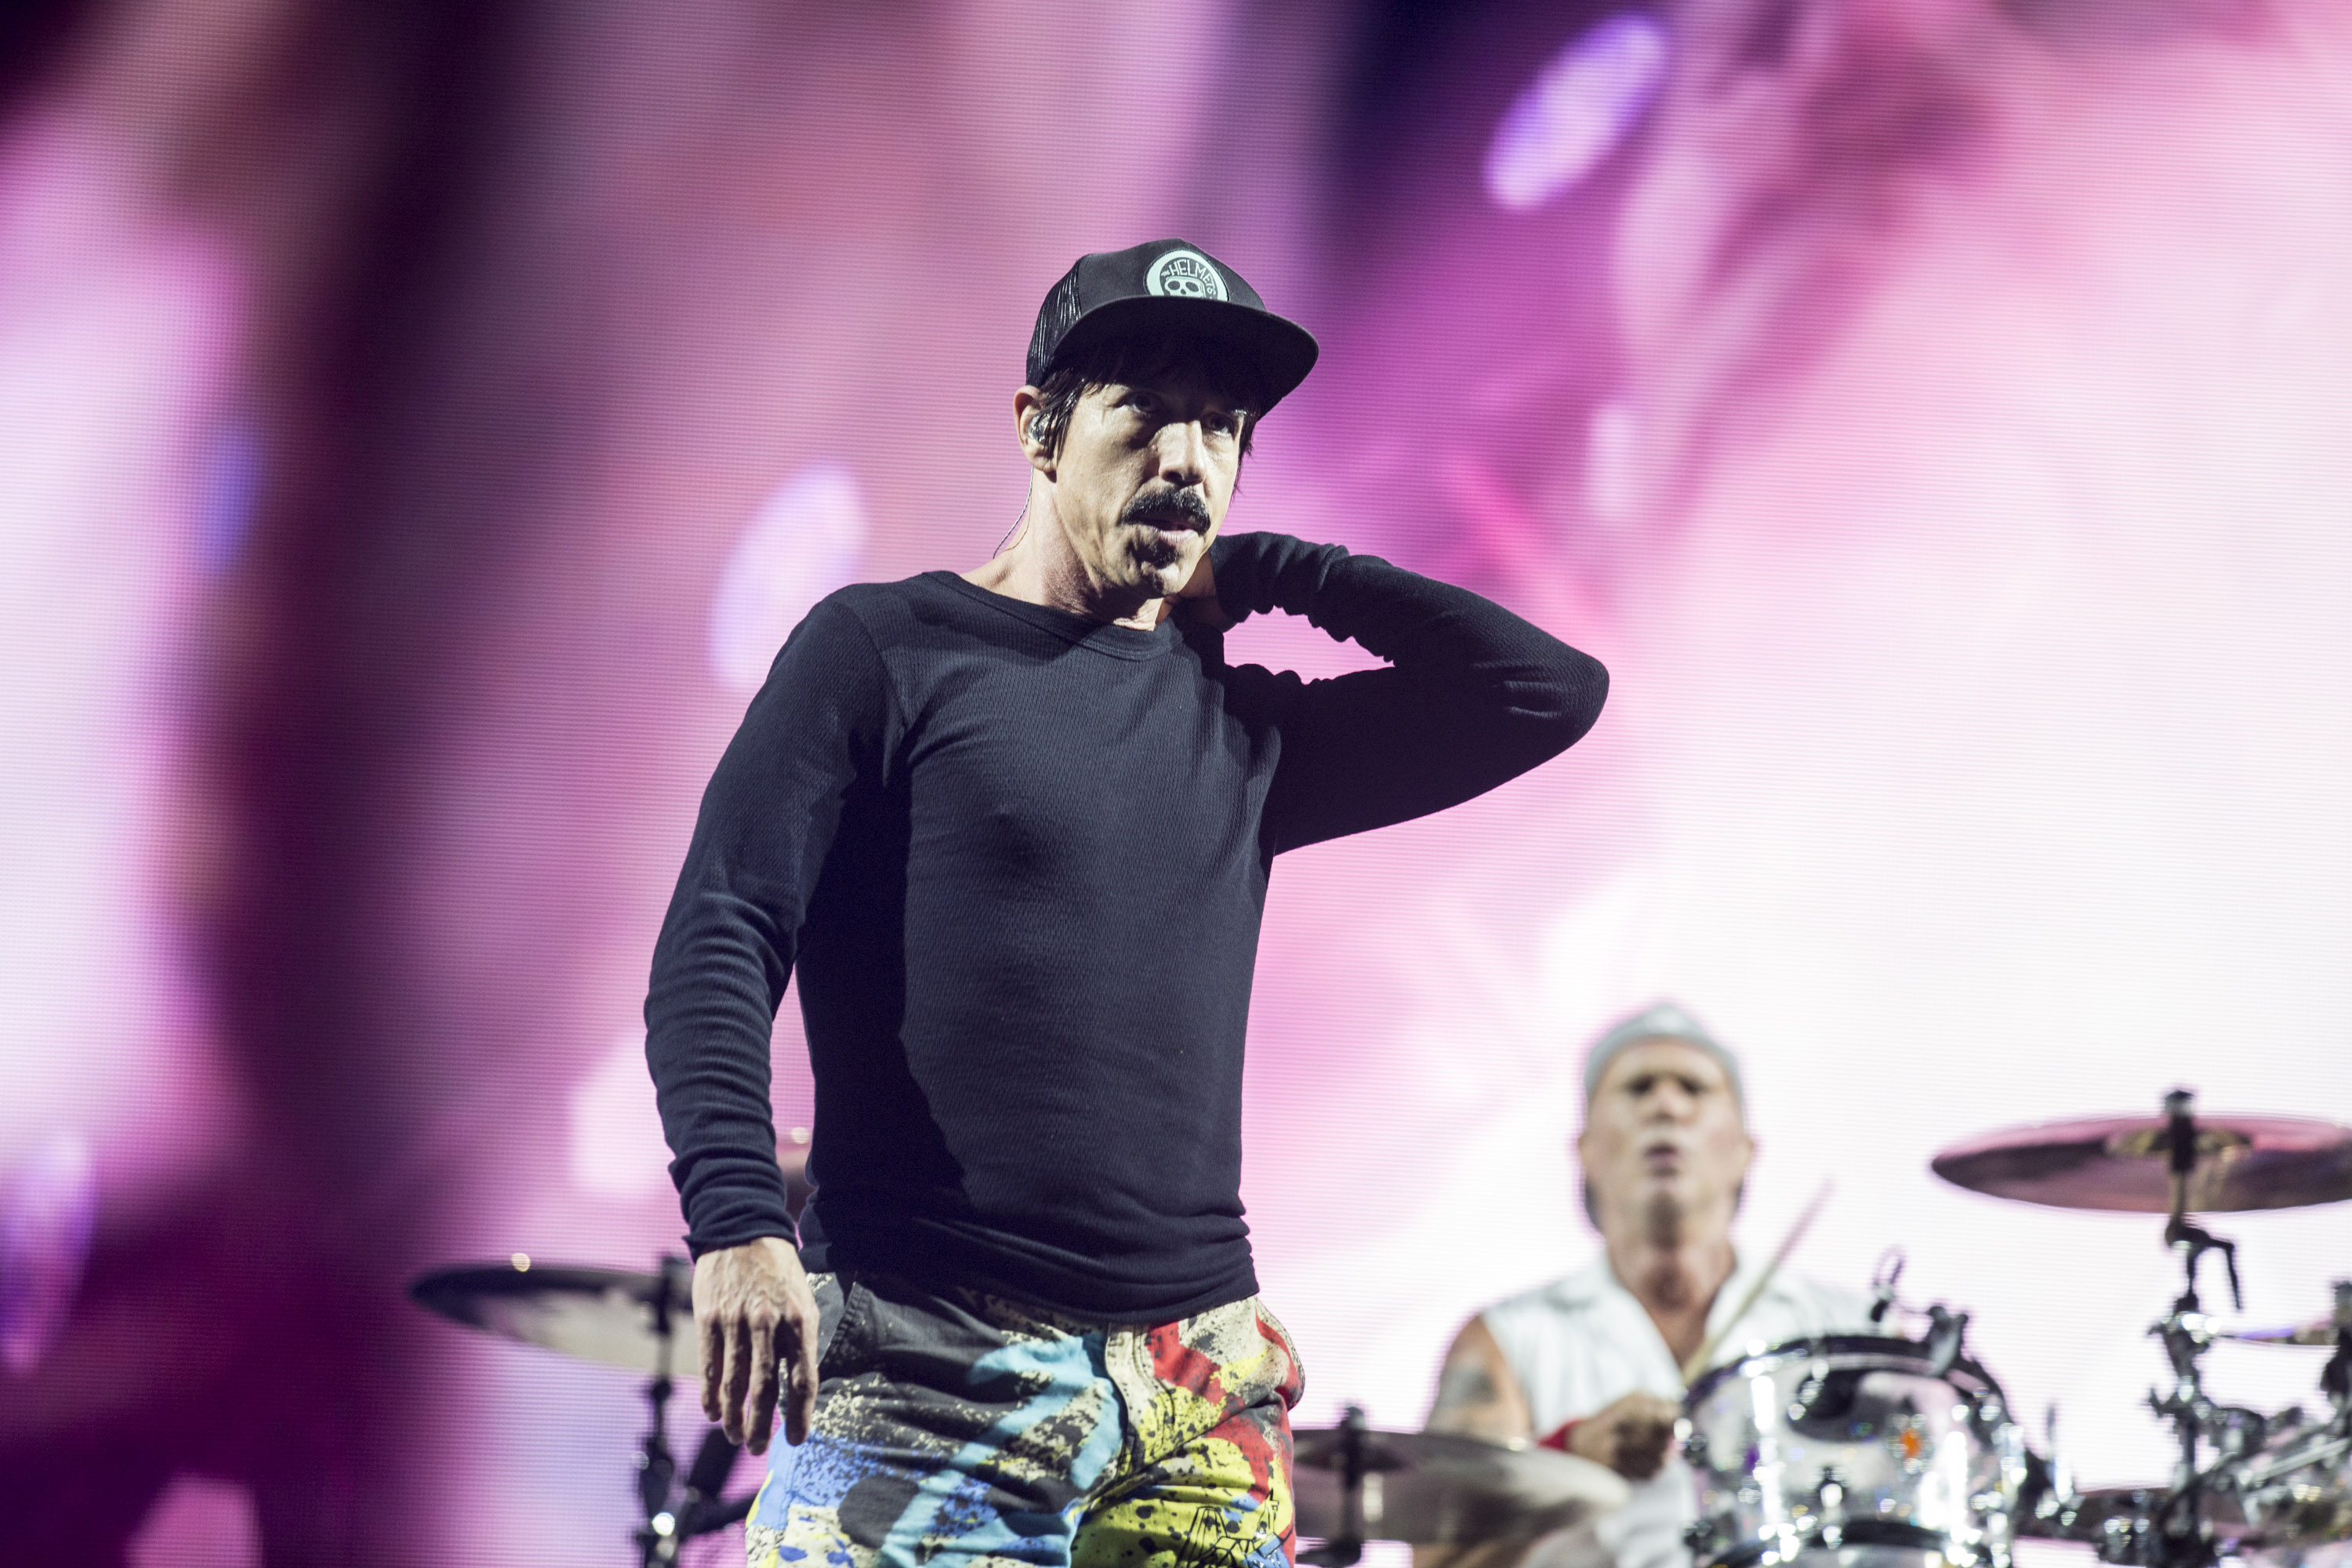 Red Hot Chili Peppers deliver at Reading 2016